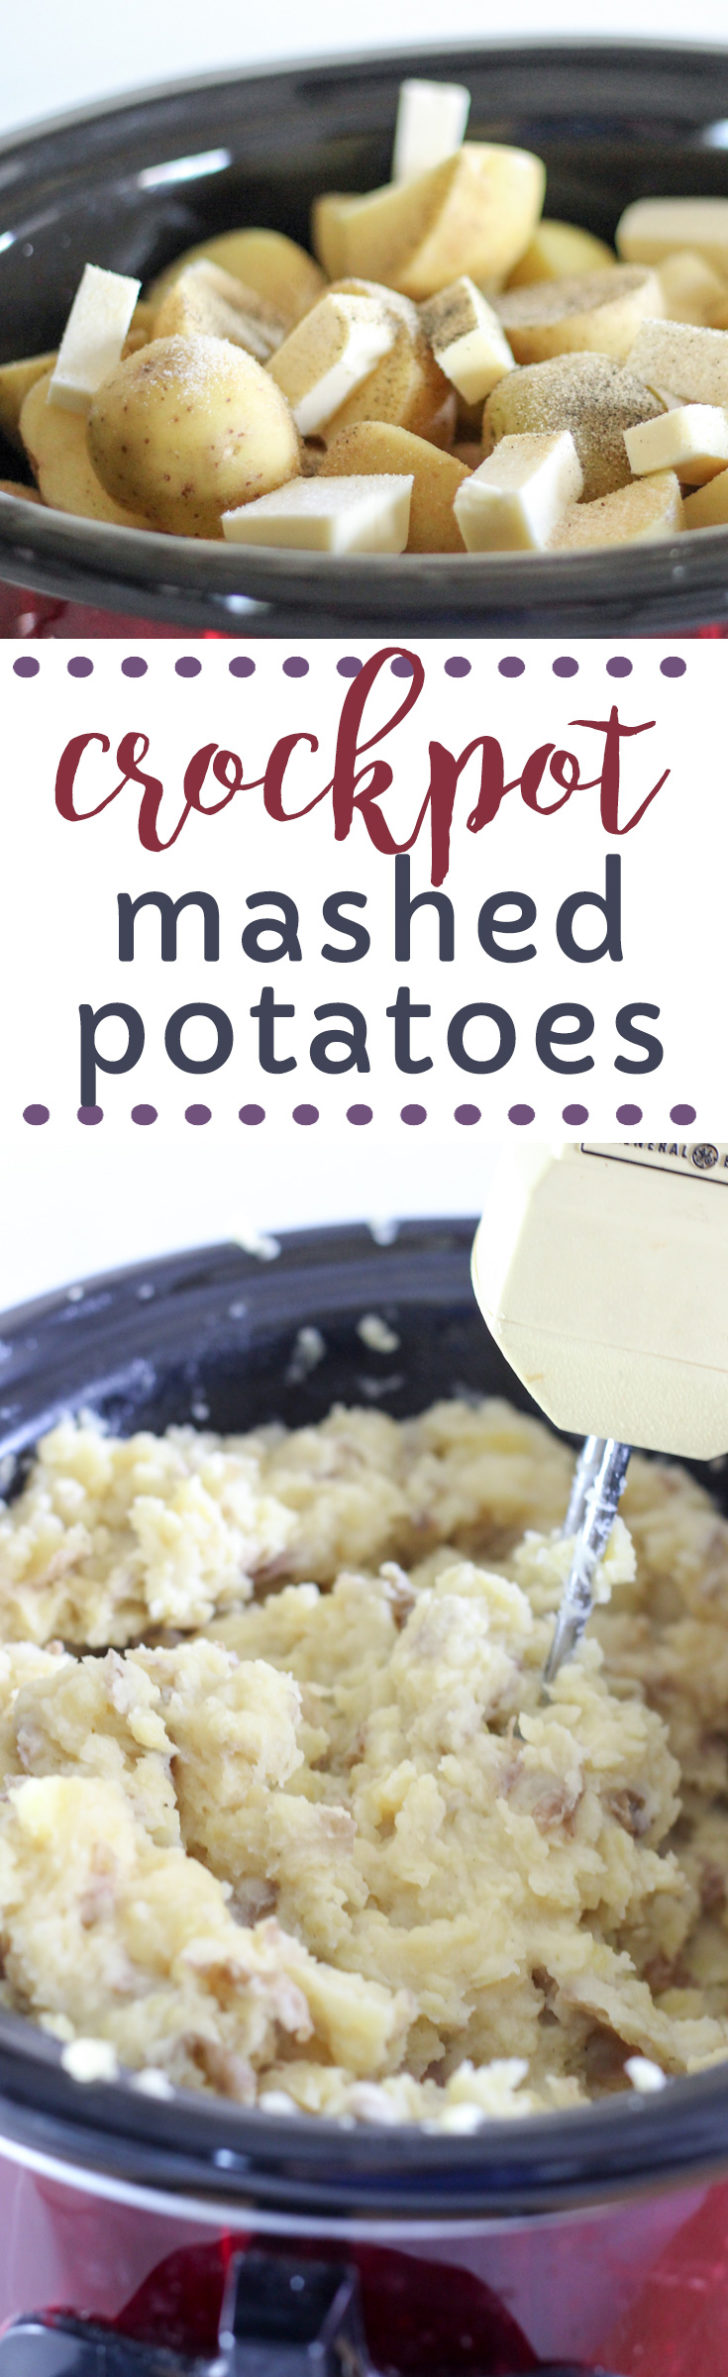 How to make mashed potatoes in the crockpot using electric mixer.